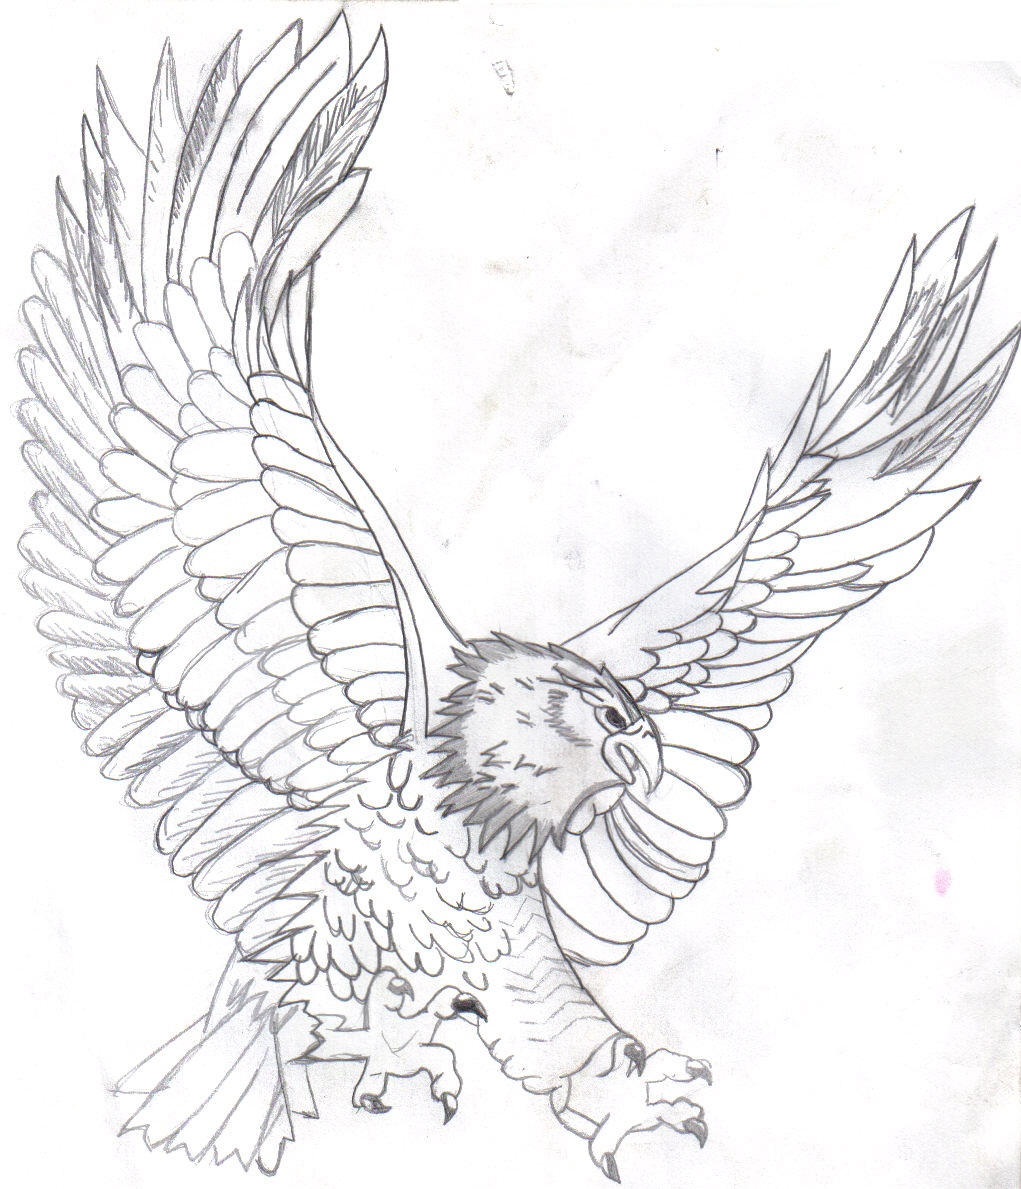 bald eagle coloring pages free for kids - American Bald Eagle Coloring Page